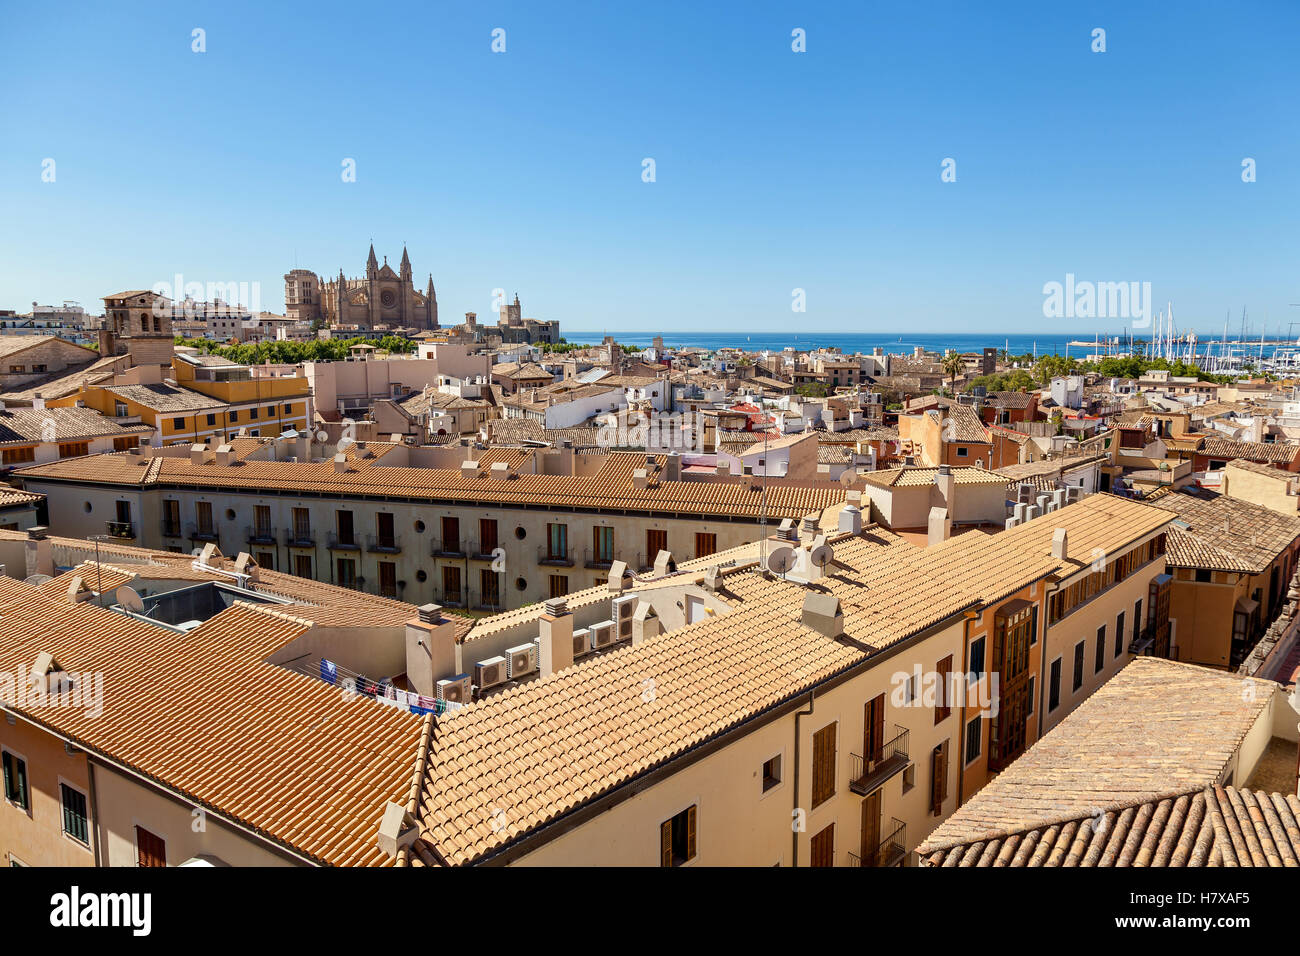 View of Palma de Mallorca. Wiew of Palma de Mallorca from the roof of one of the houses of the seaside town. In - Stock Image